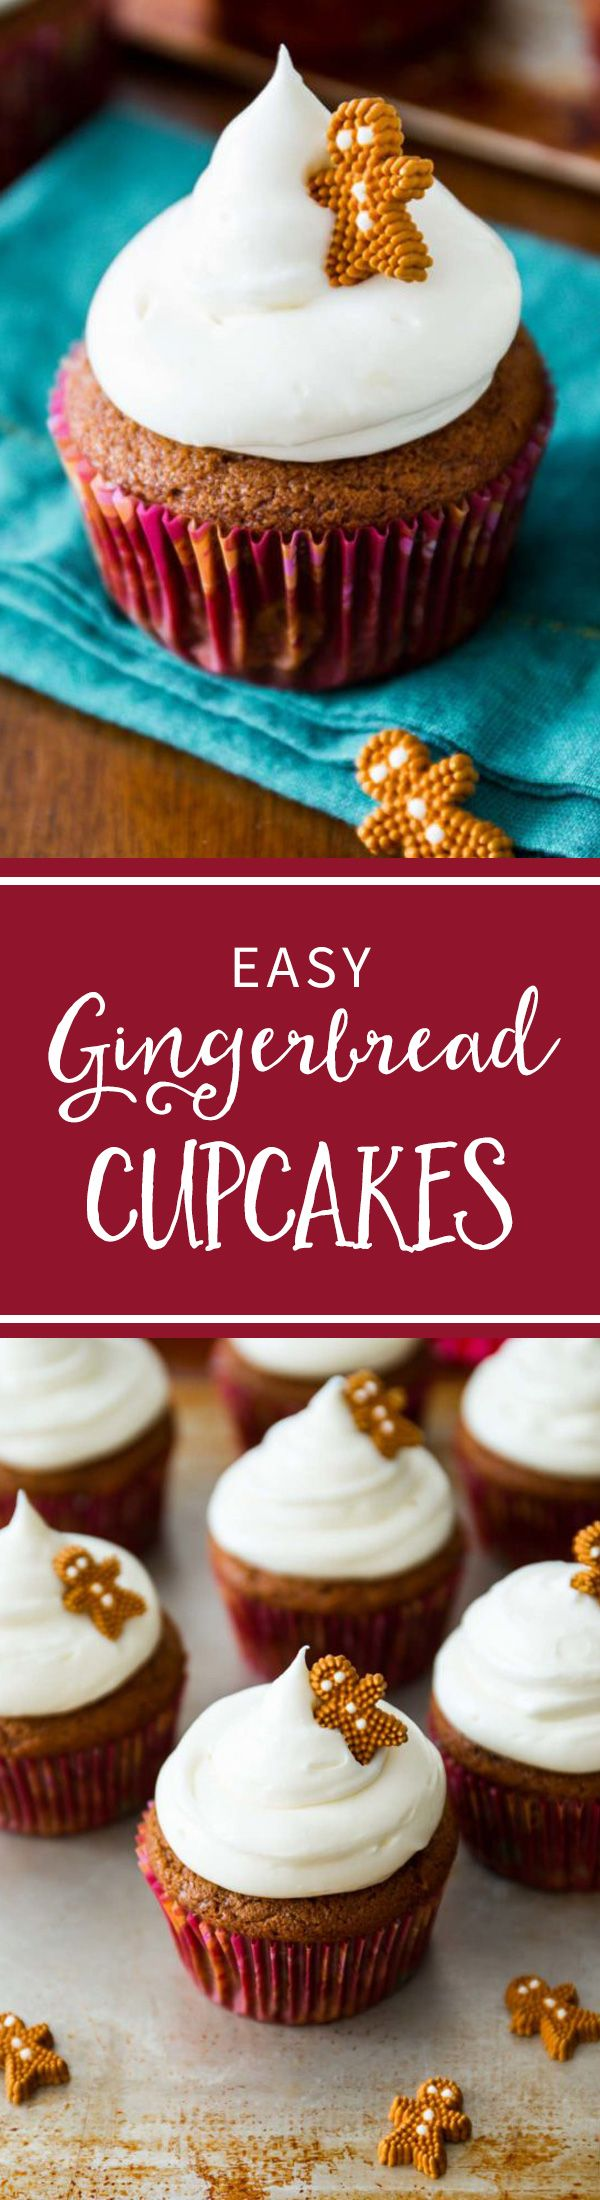 Gingerbread Cupcakes with the BEST cream cheese frosting recipe! sallysbakingaddiction.com